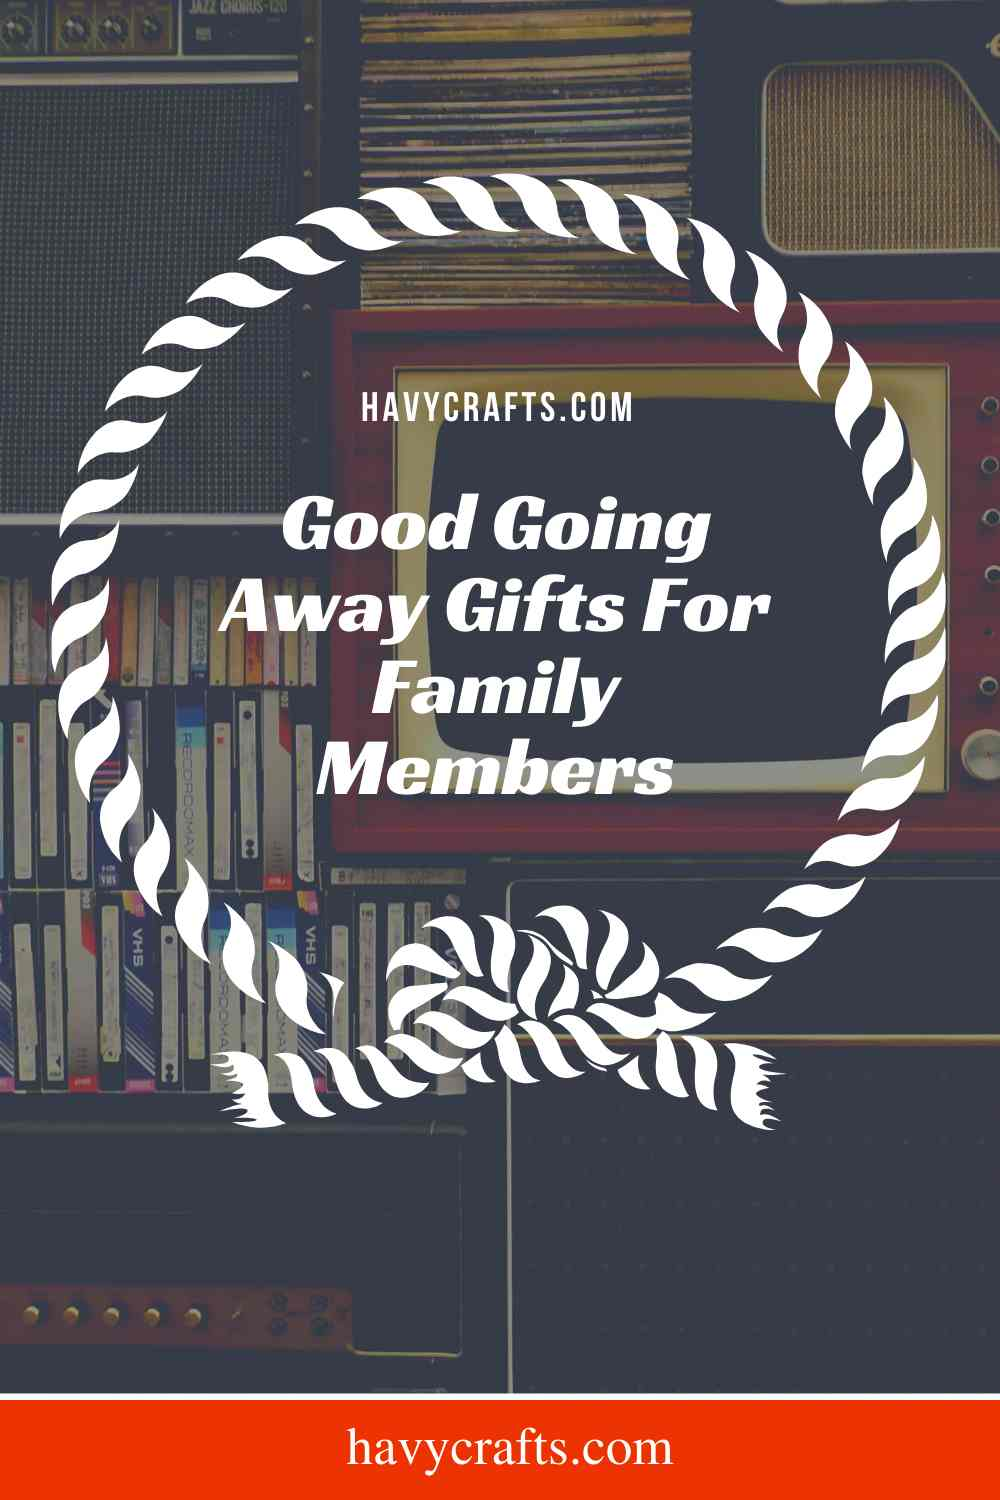 Good going away gifts for family members